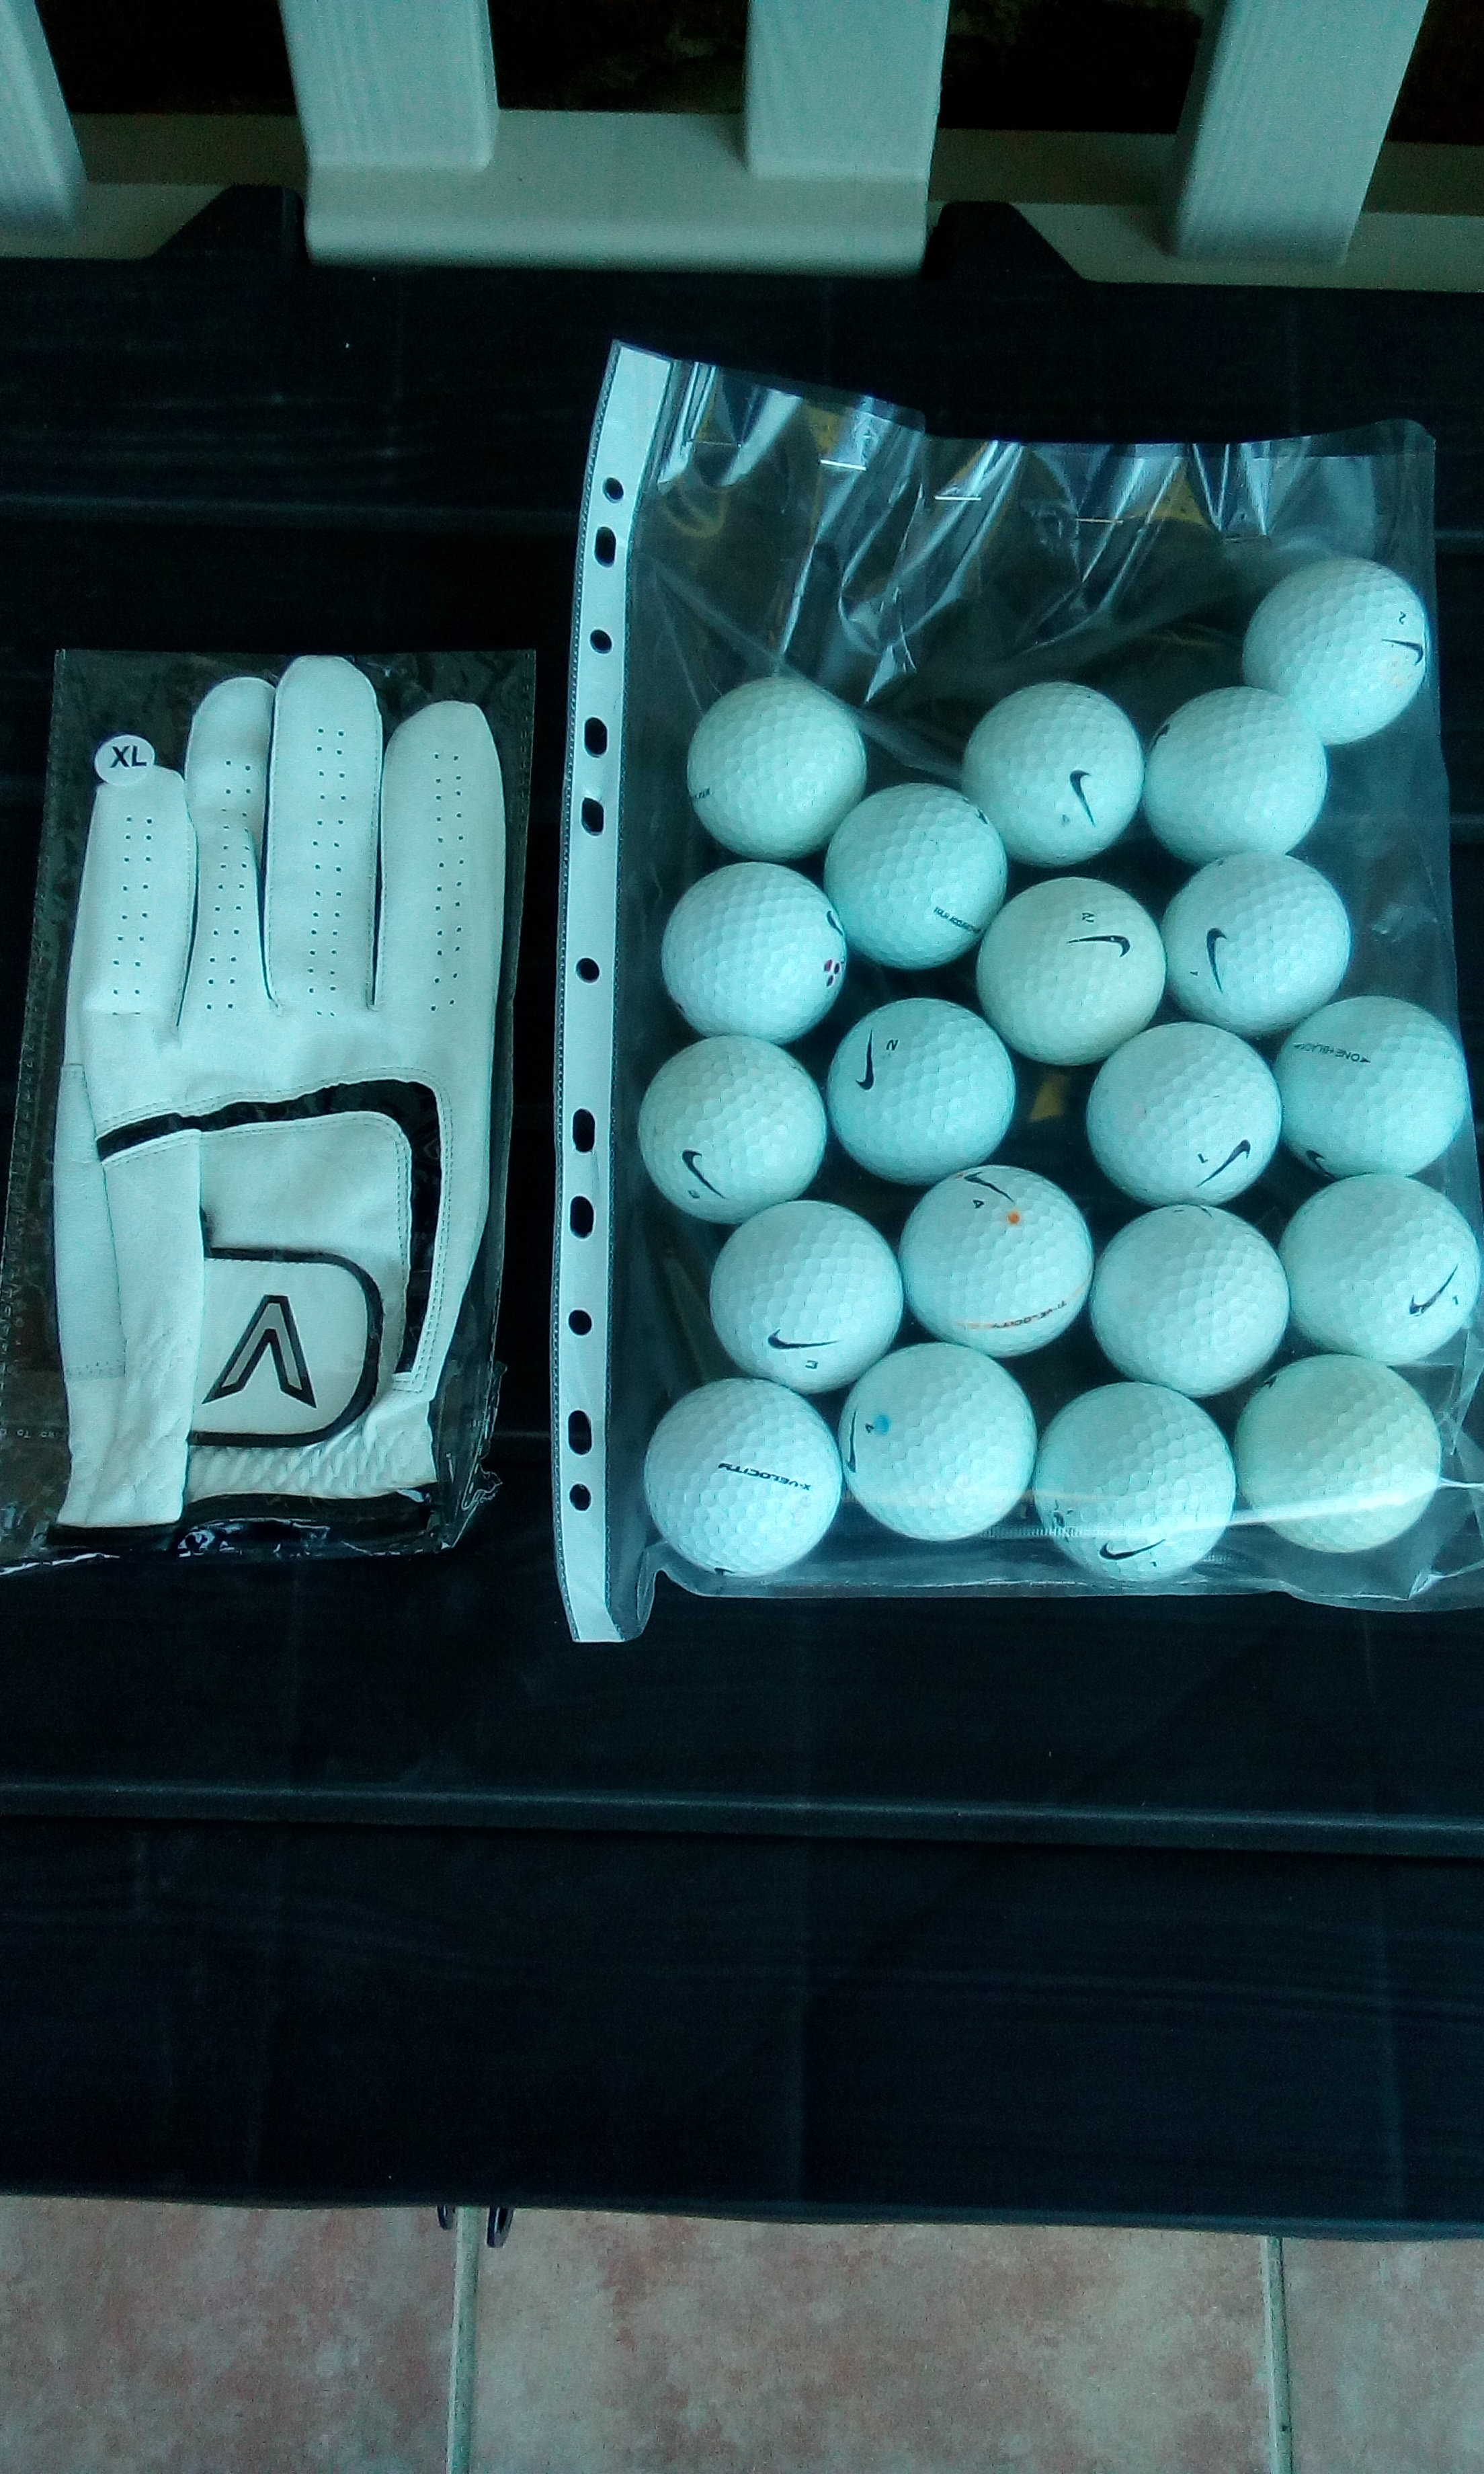 mientras rosado trampa  For sale: 20 Grade A Nike Golf Balls and new golf glove - Buy and sell  items in Santiago de la Ribera - Santiago de la Ribera forum - Costa Cálida  forum